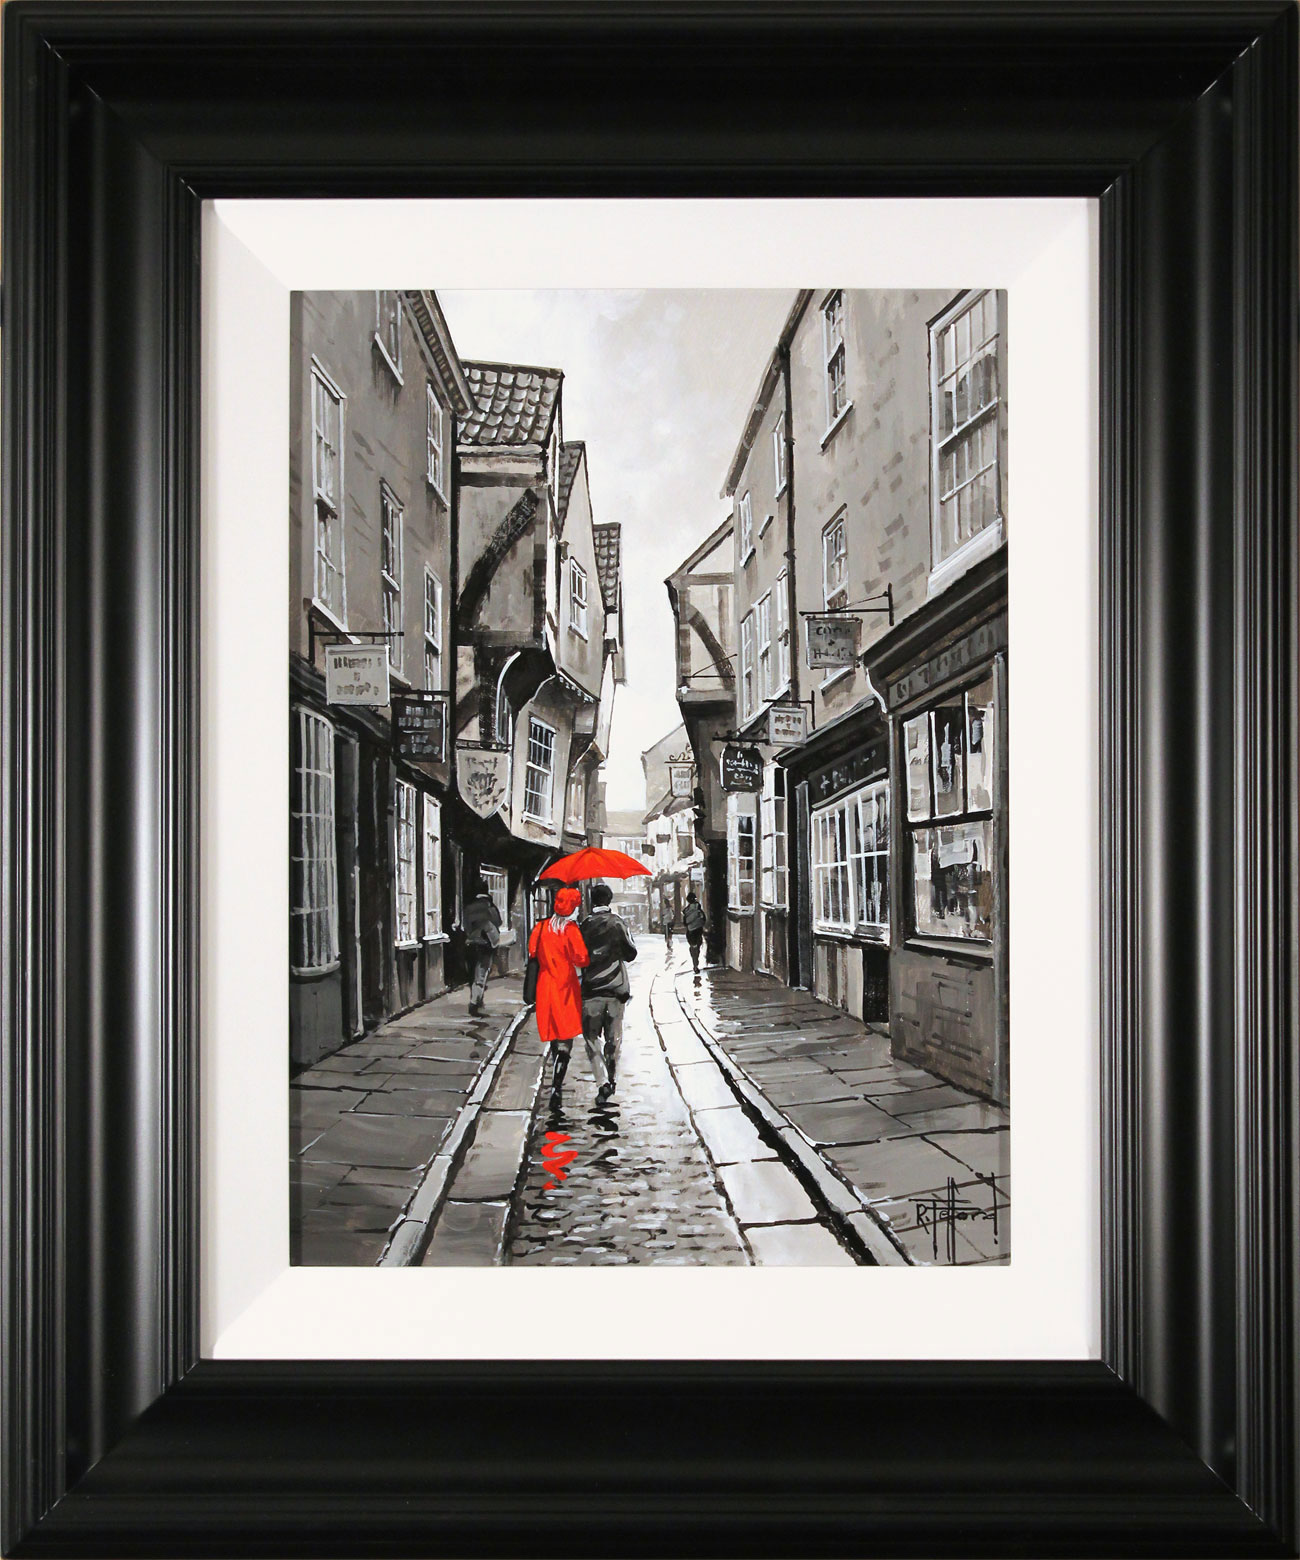 Richard Telford, Original oil painting on panel, The Shambles, York, click to enlarge